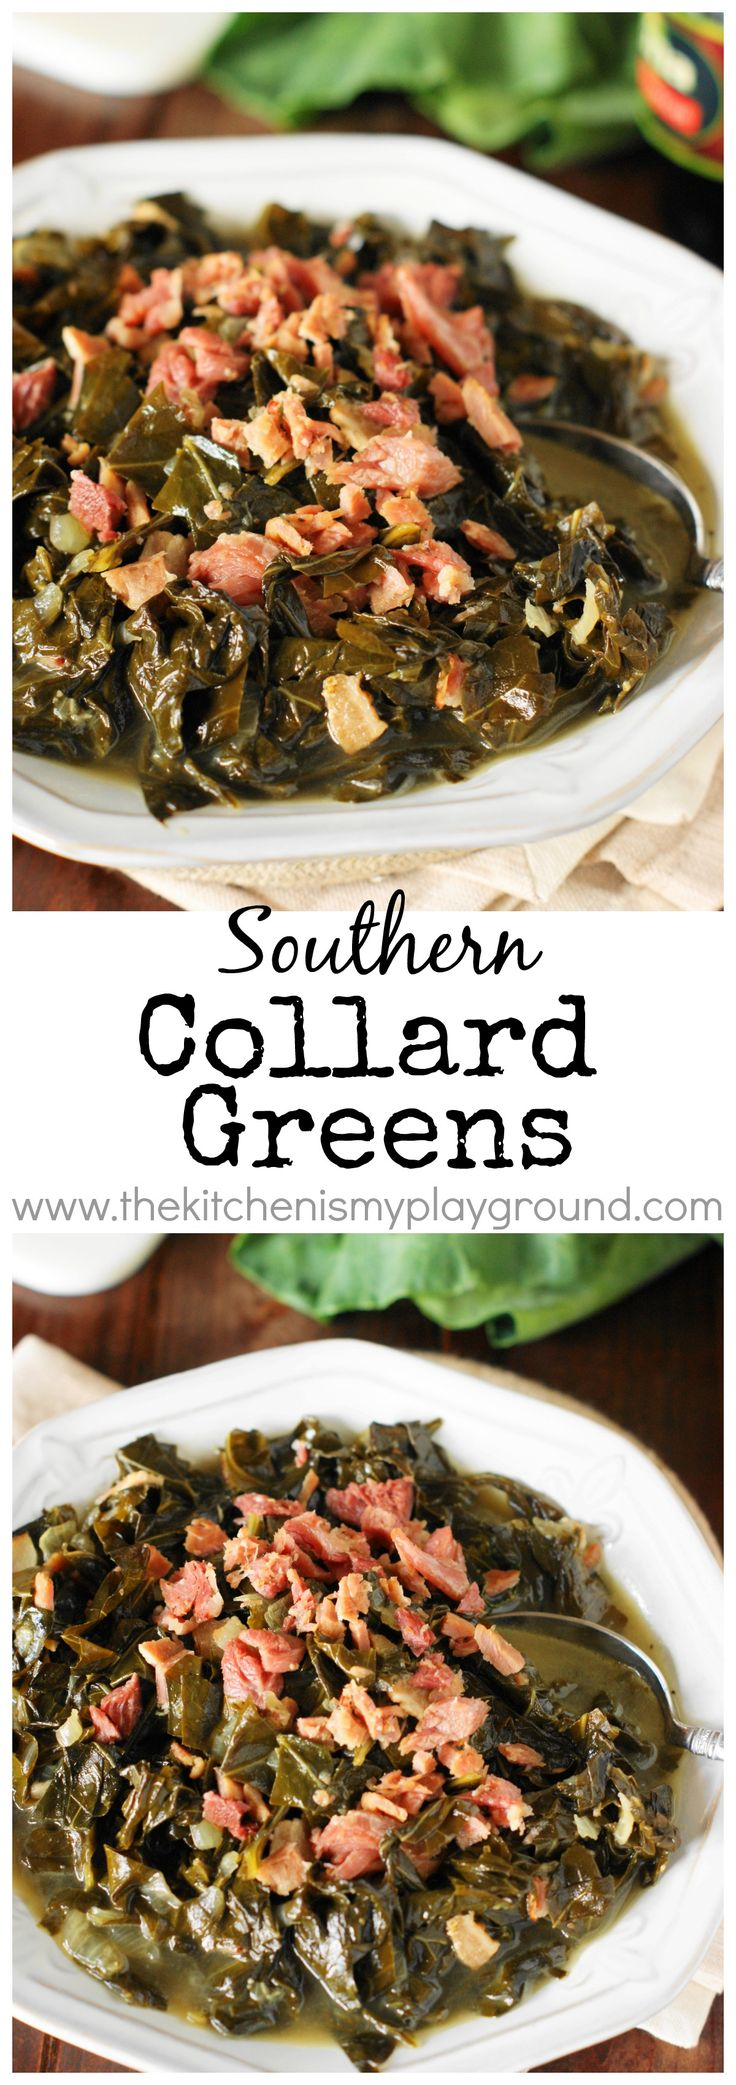 Southern Collard Greens ~ Enjoy tender, tasty collards for New Year's Day or ANY day of the year!   www.thekitchenism...